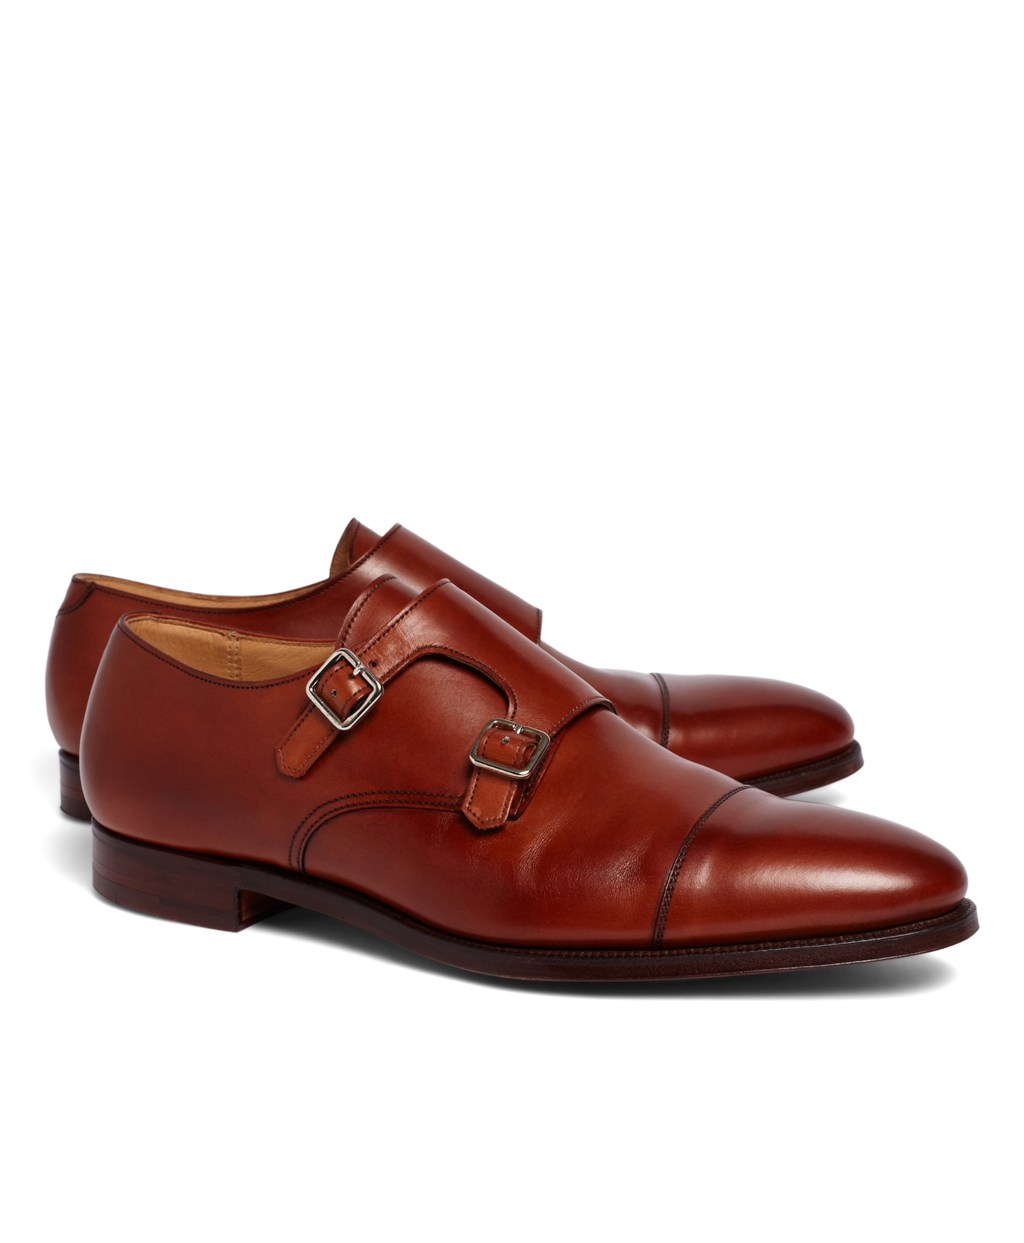 Leather Monk Shoes Double Strap